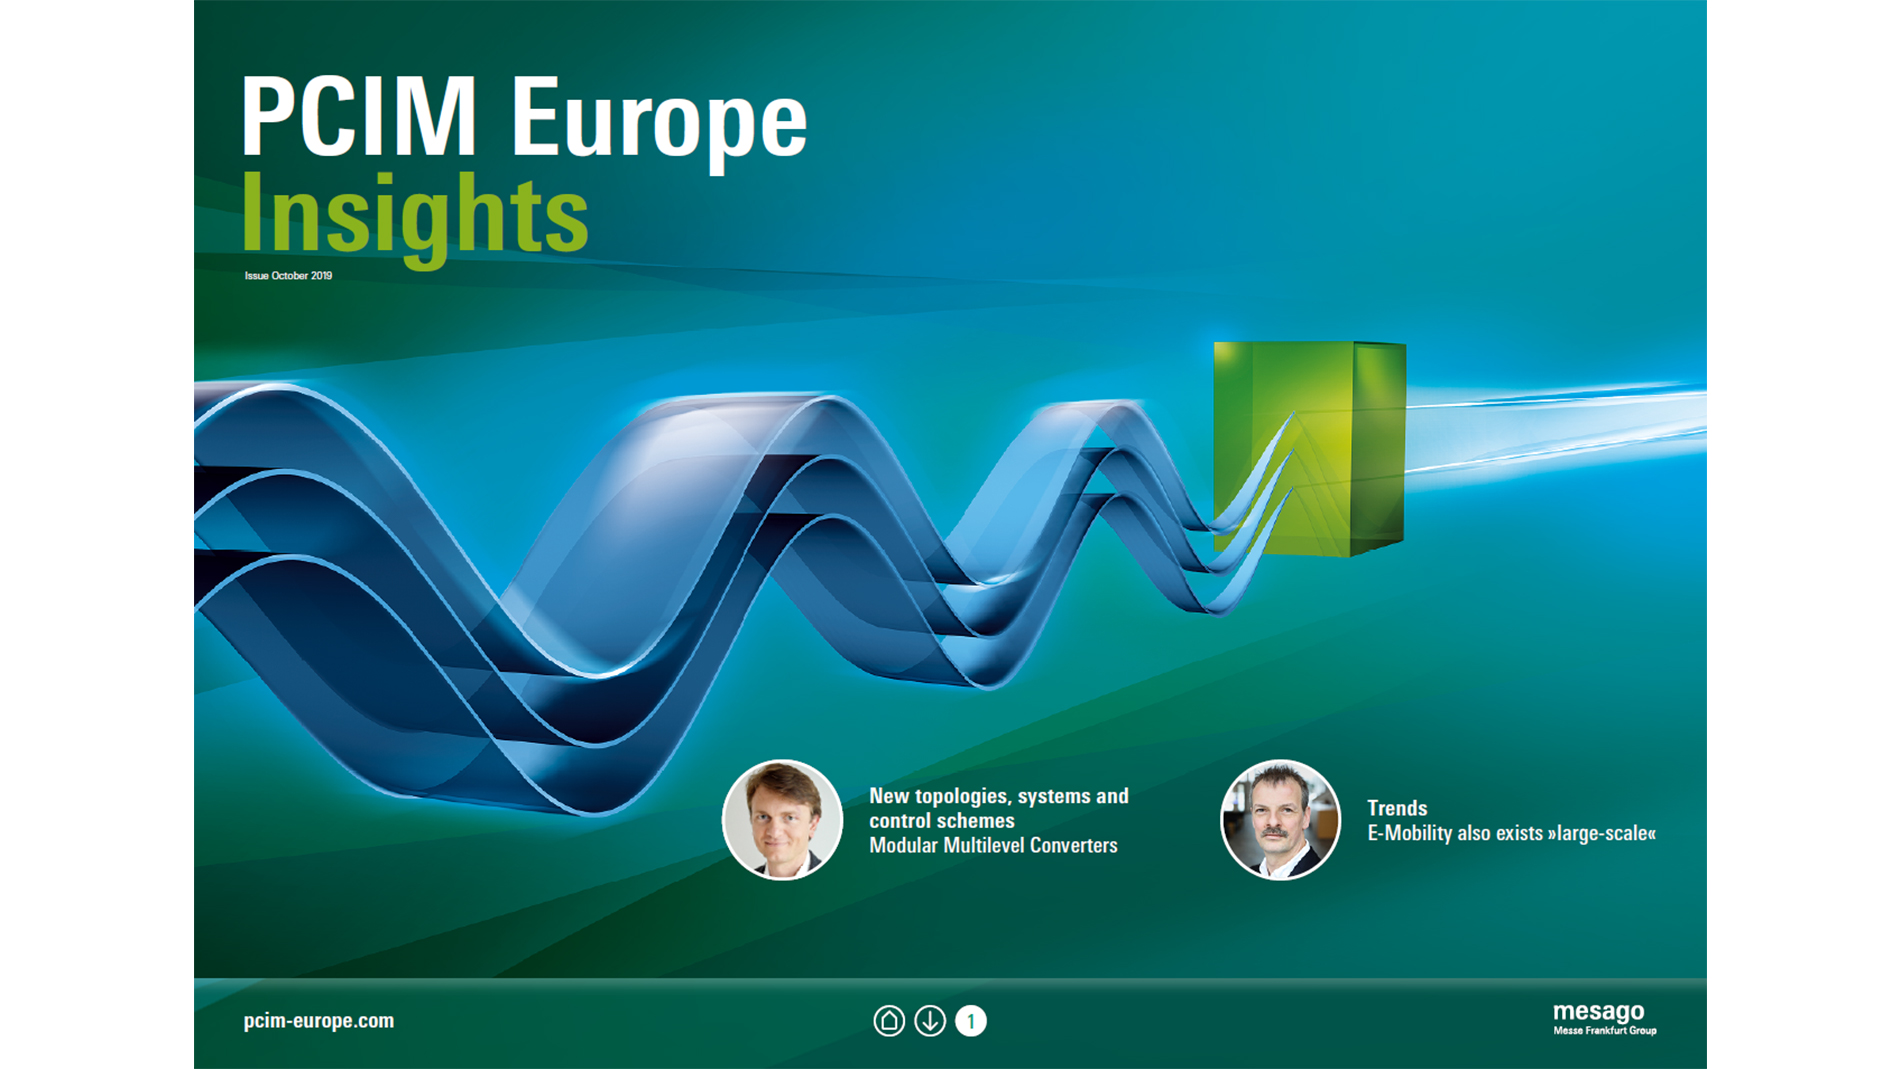 PCIM Europe Insights